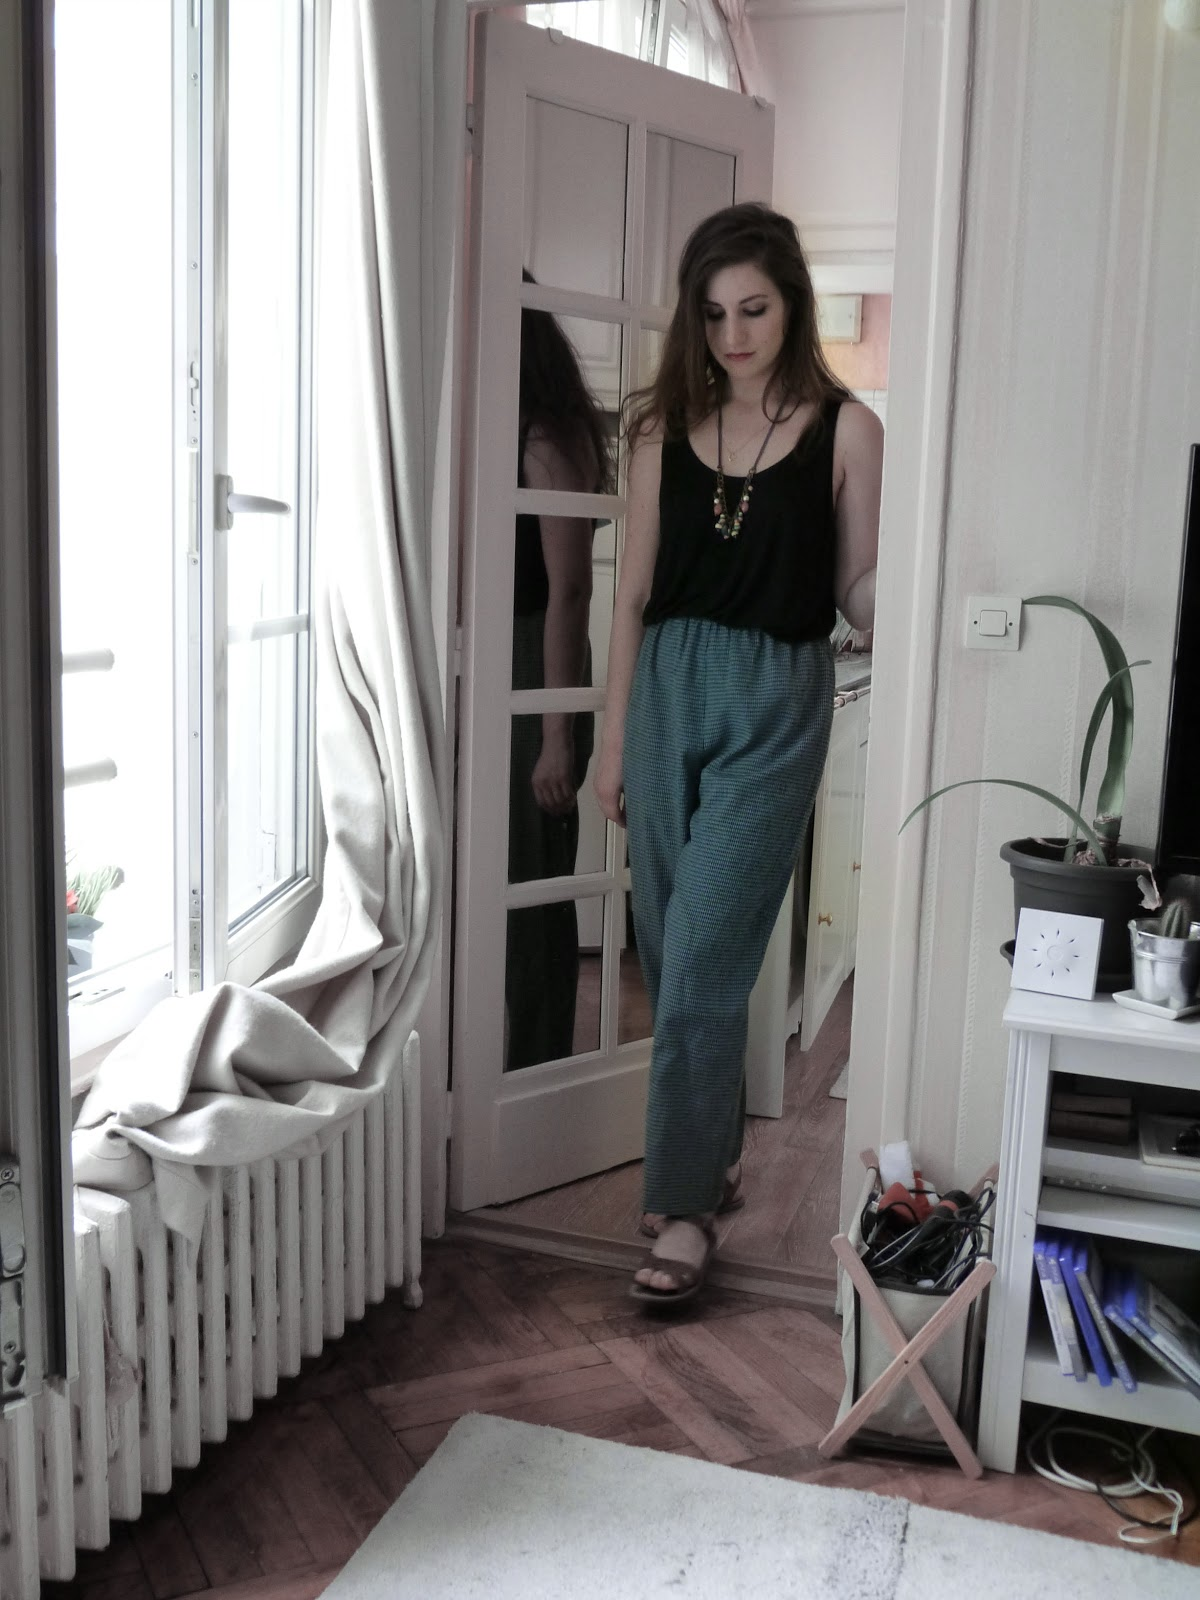 Thrift shopping guide: mom jeans and patterned pants